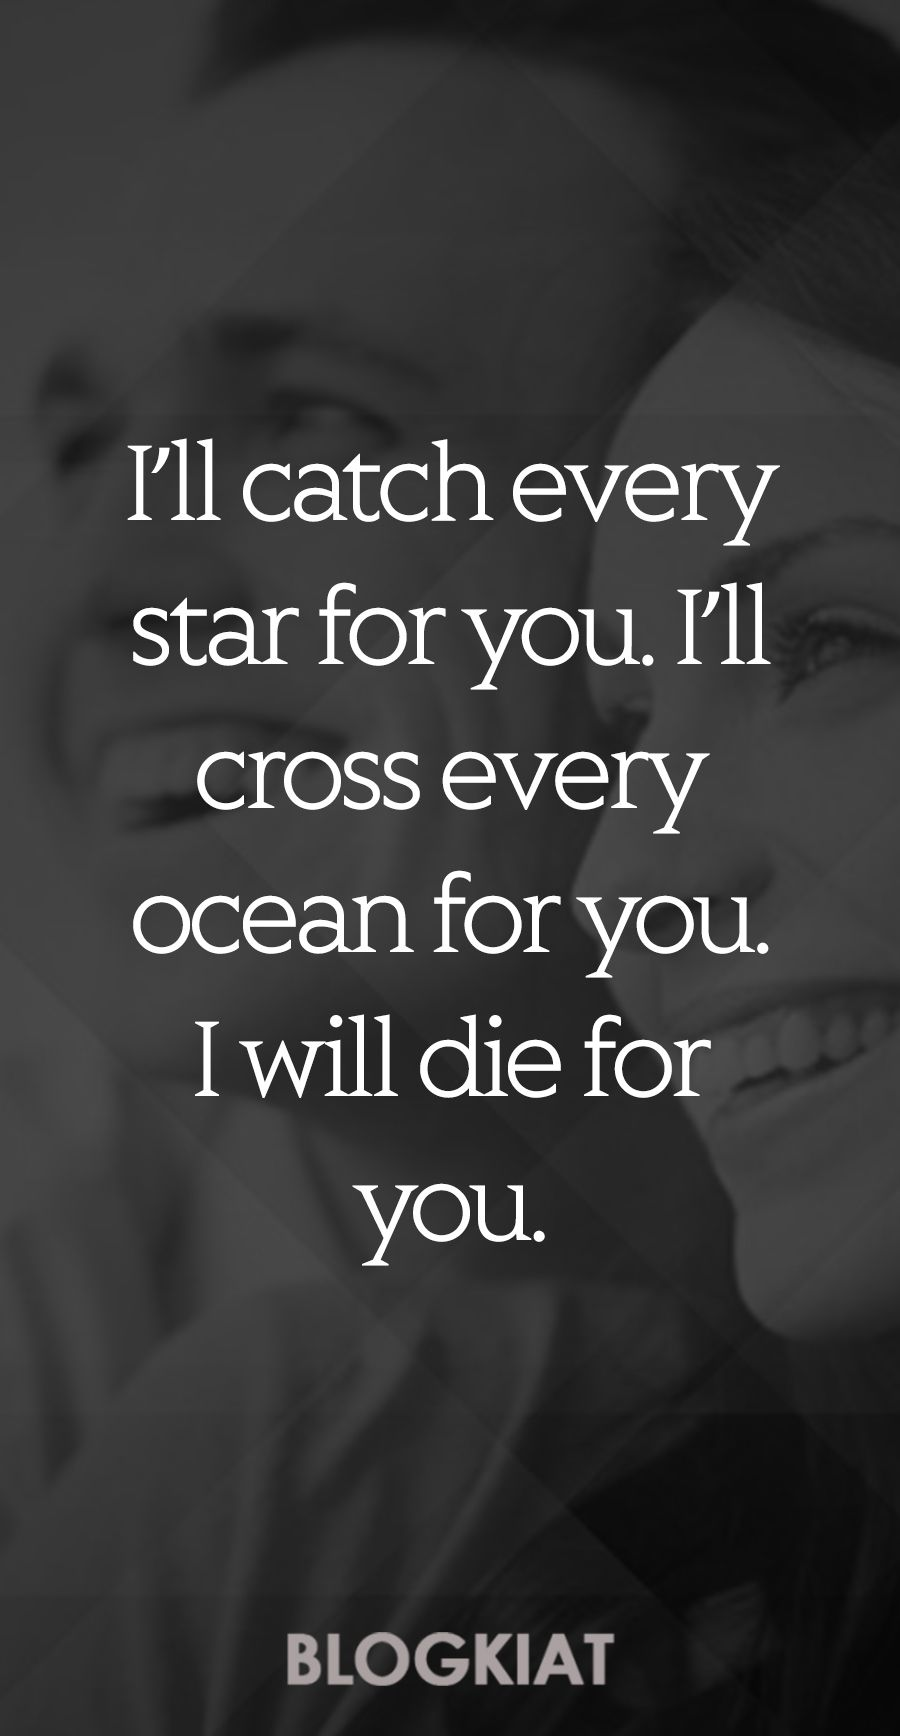 Cute Love Quotes For Her 50 Sweet Cute & Romantic Love Quotes For Her  Romantic